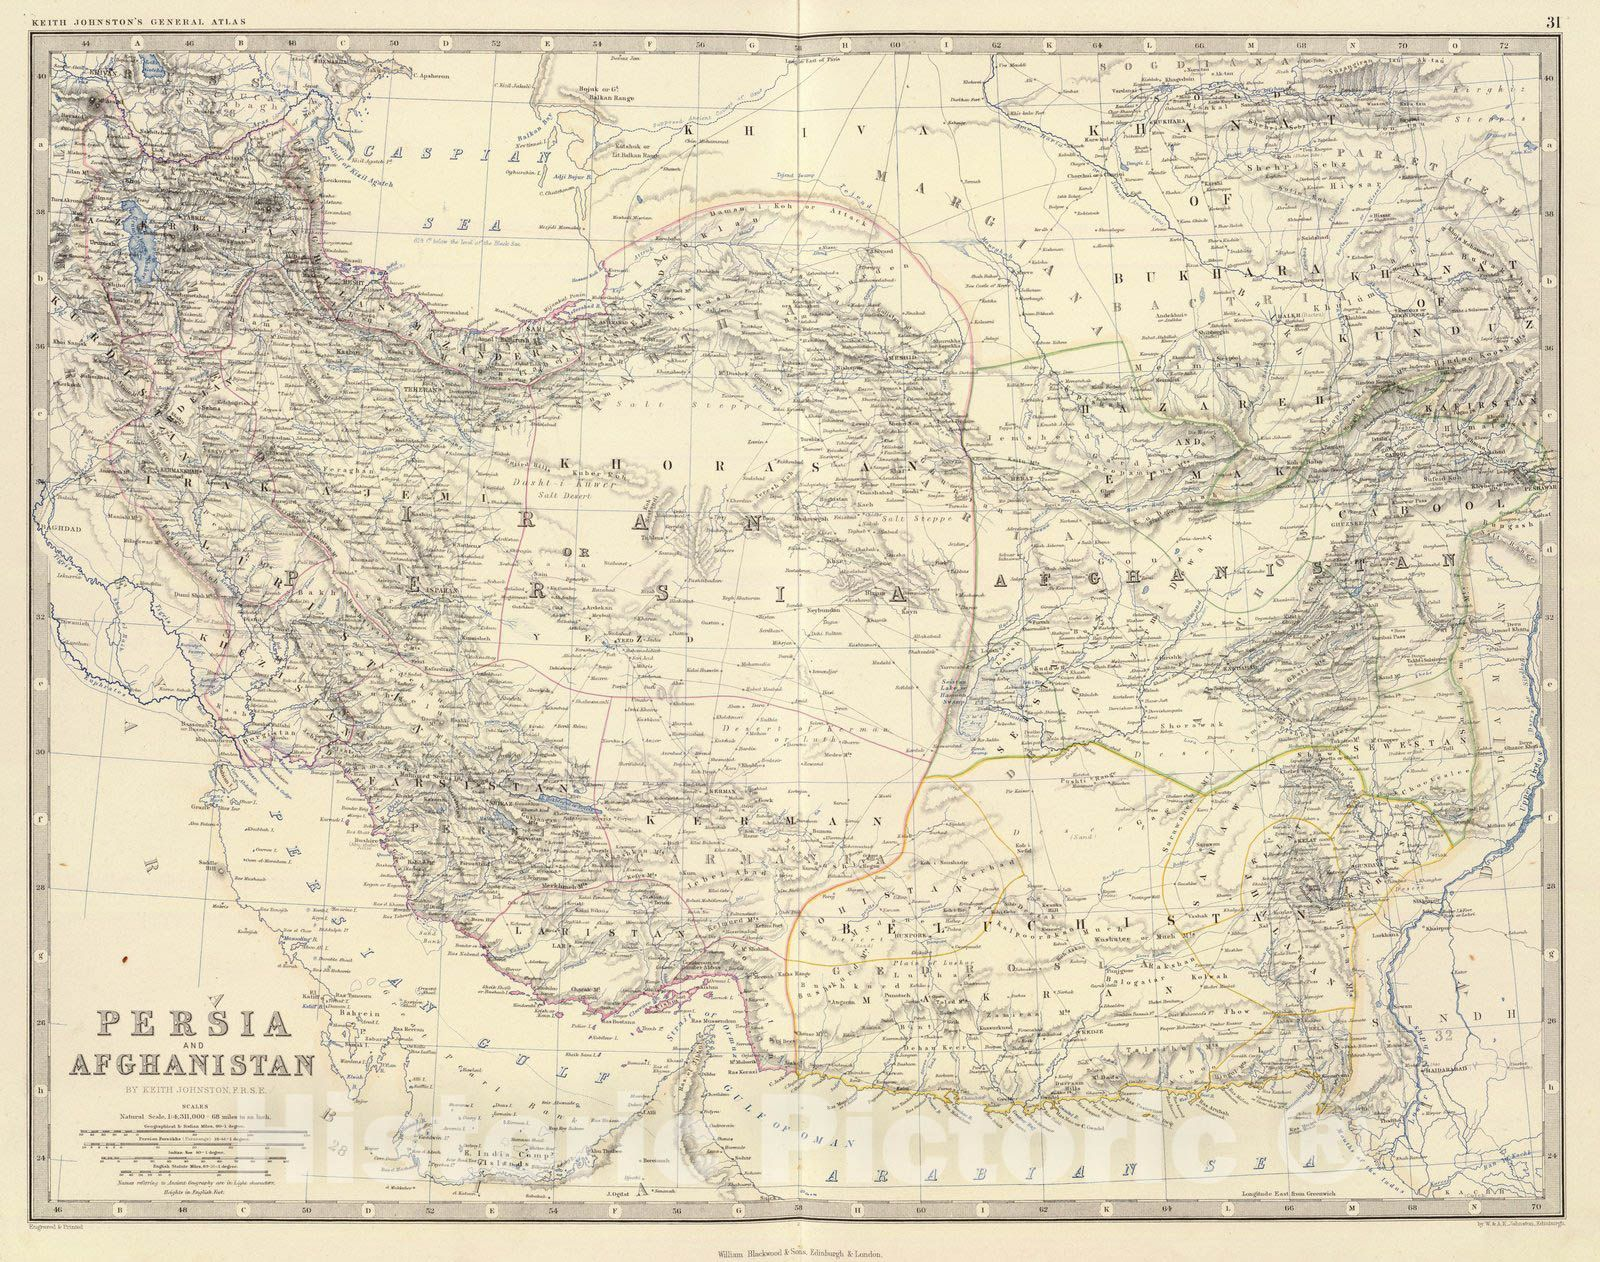 <p>Persia and Afghanistan by Keith Johnston, F.R.S.E. Engraved & printed by W. & A.K. Johnston, Edinburgh. William Blackwood & Sons, Edinburgh & London, (1861) | The royal atlas of modern geography, exhibiting, in a series of entirely original and authentic maps, the present condition of geographical discovery and research in the several countries, empires, and states of the world by Alexander Keith Johnston ... With a special index to each map. William Blackwood and Sons, Edinbu